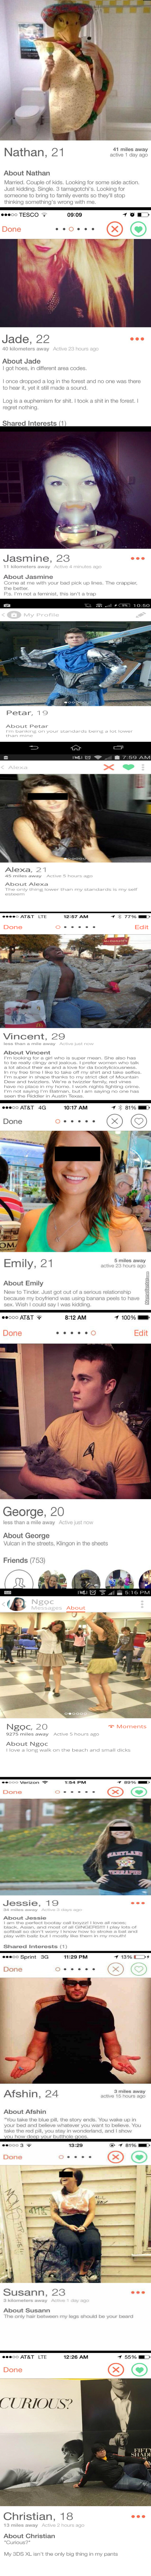 Tinder Being Tinder (It Gets Weirder The More You Scroll)